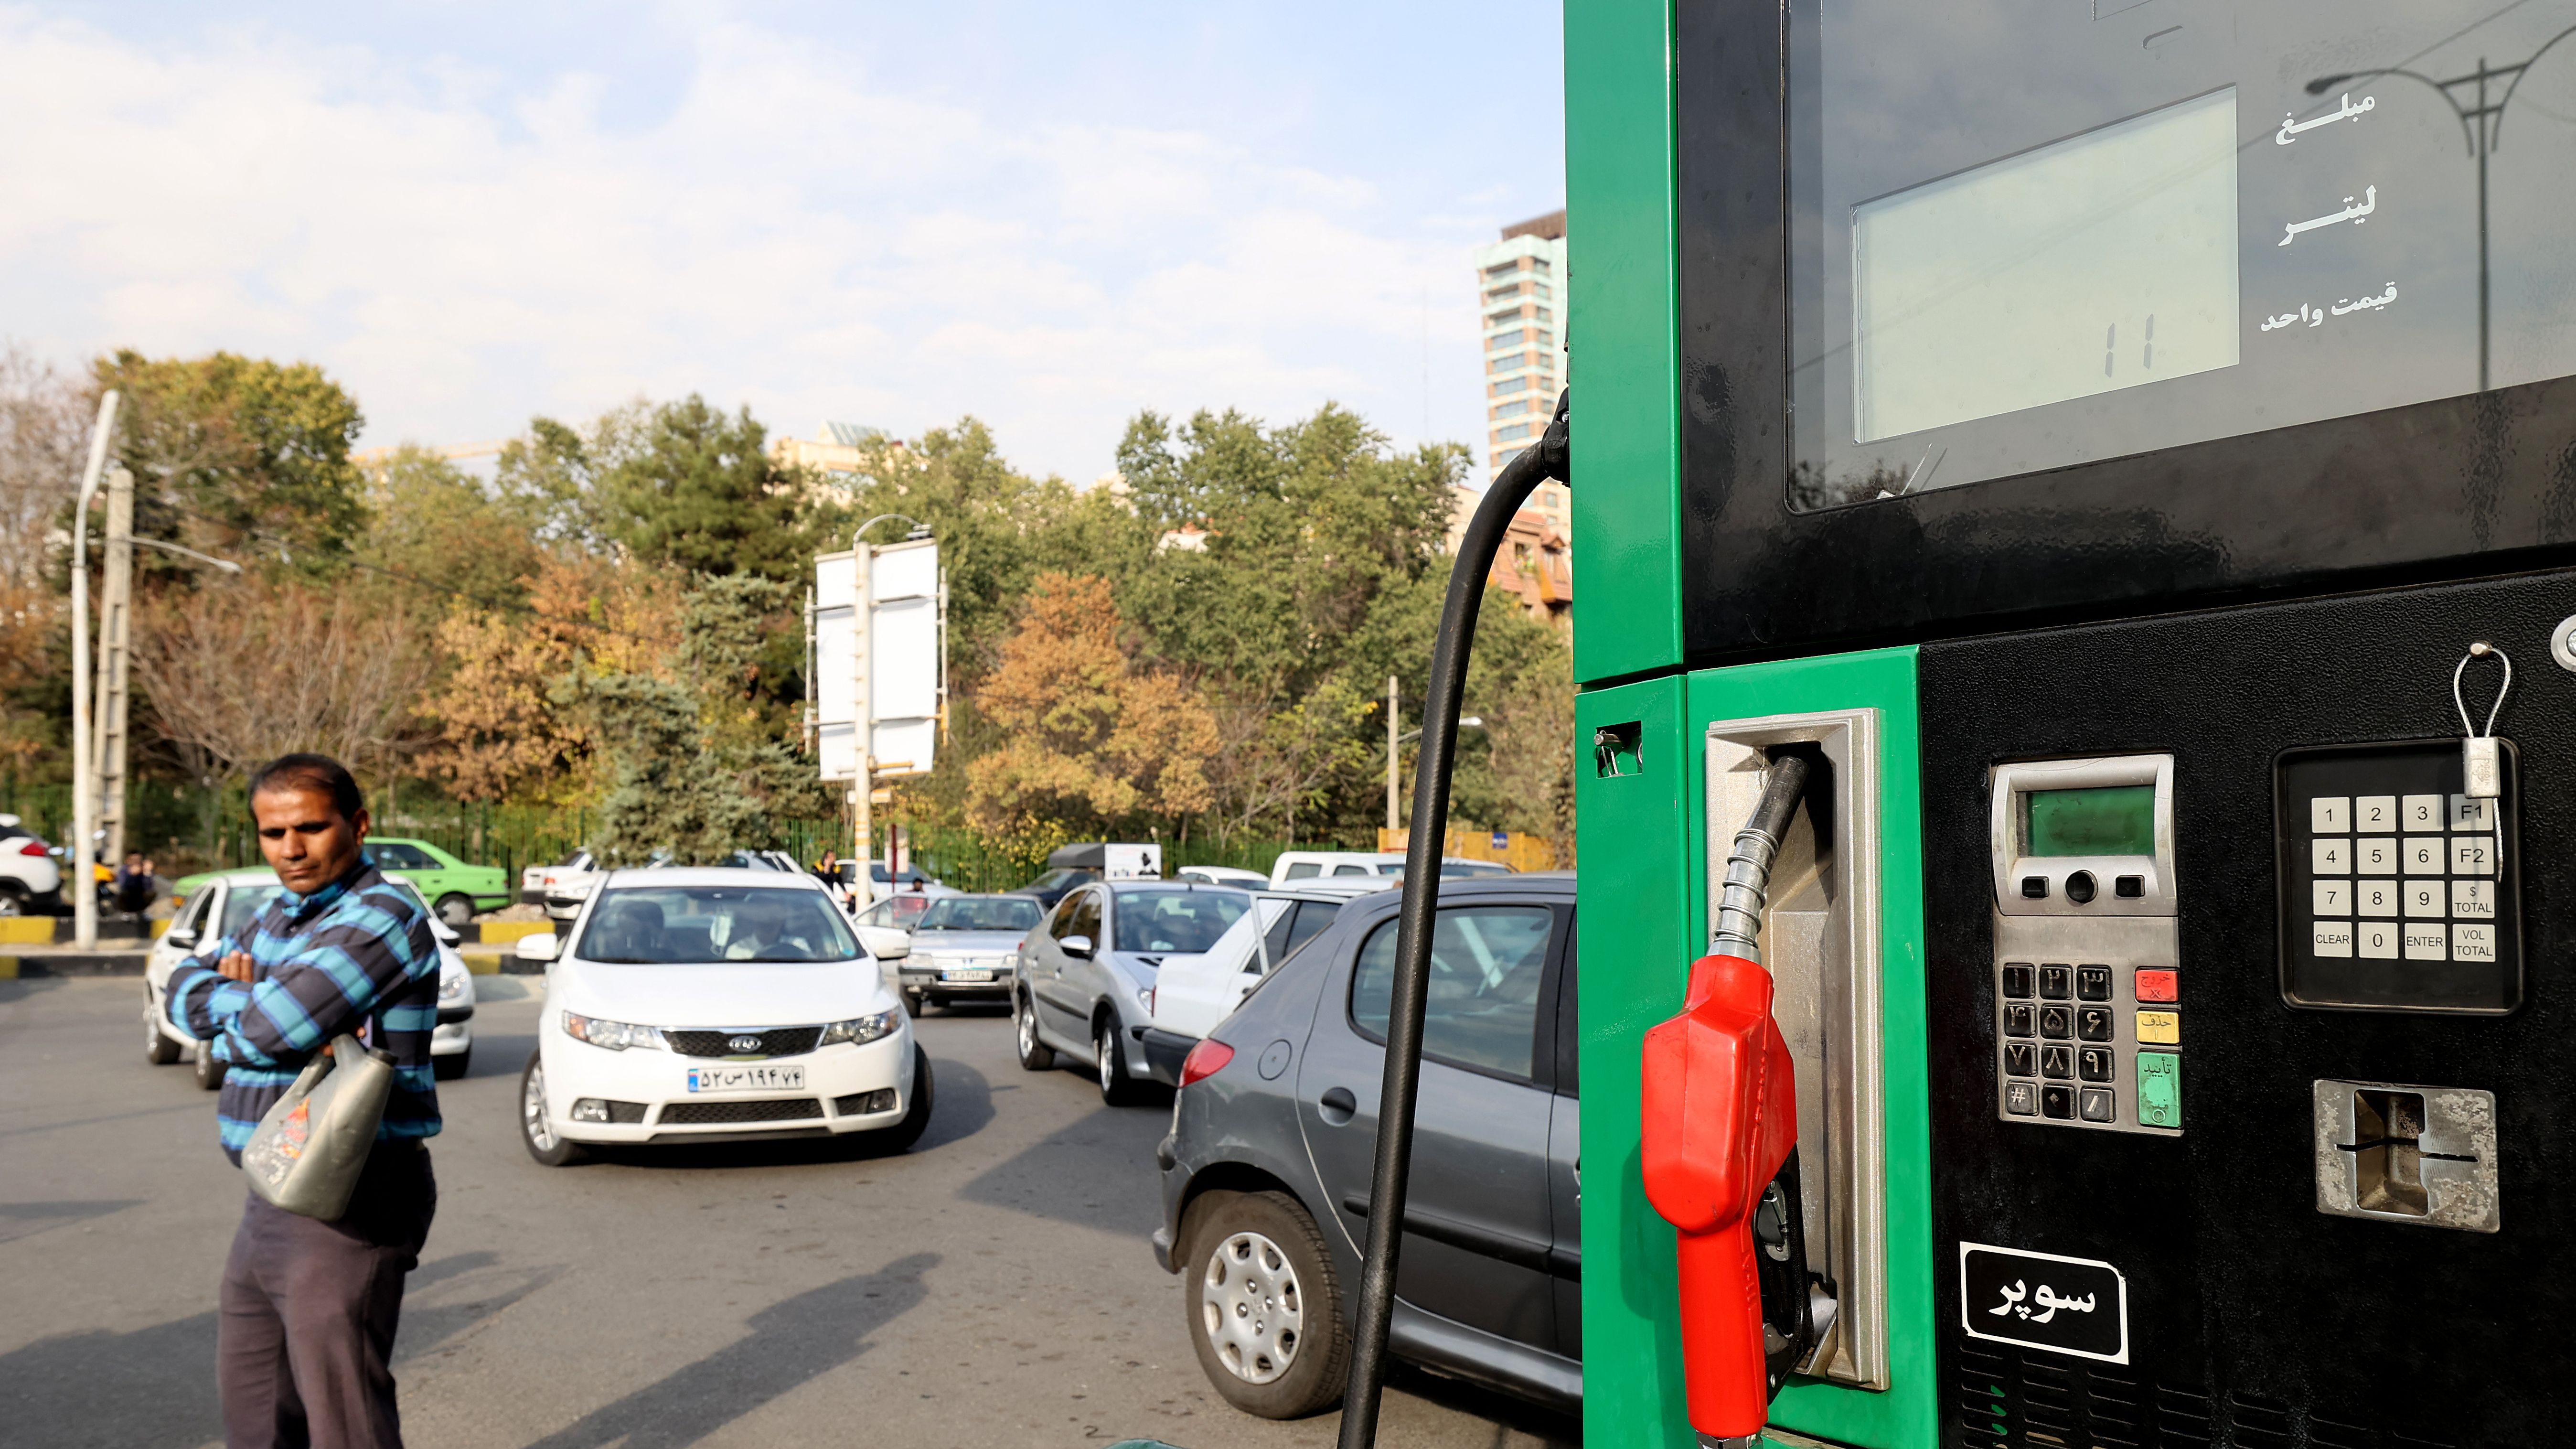 A man is standing outside of a gas pump with a container, as cars queue up behind him to fill up at a service station in Iran's capital Tehran.